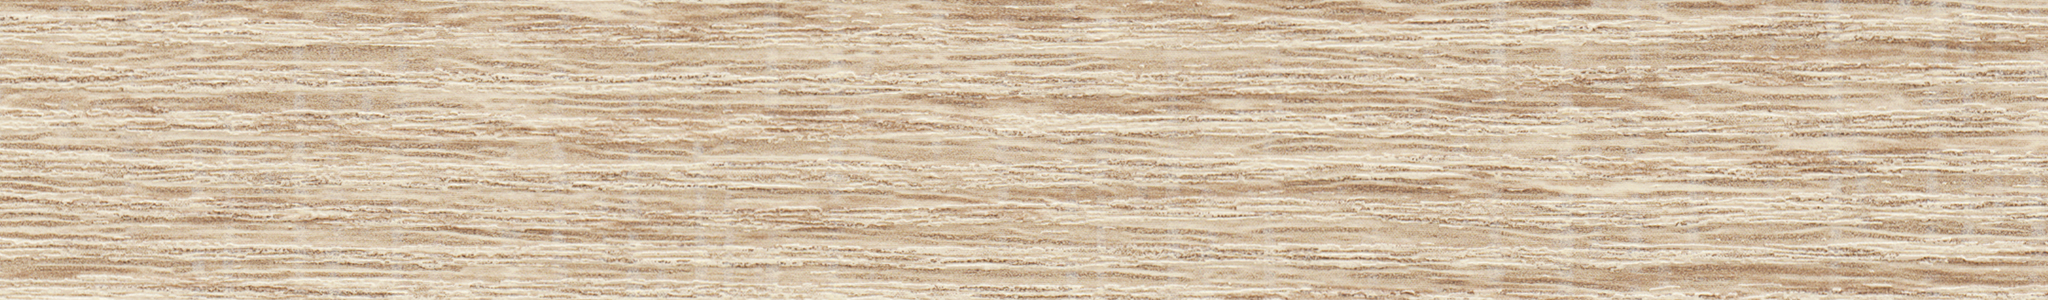 HD 243145 ABS Edge Oak Pore